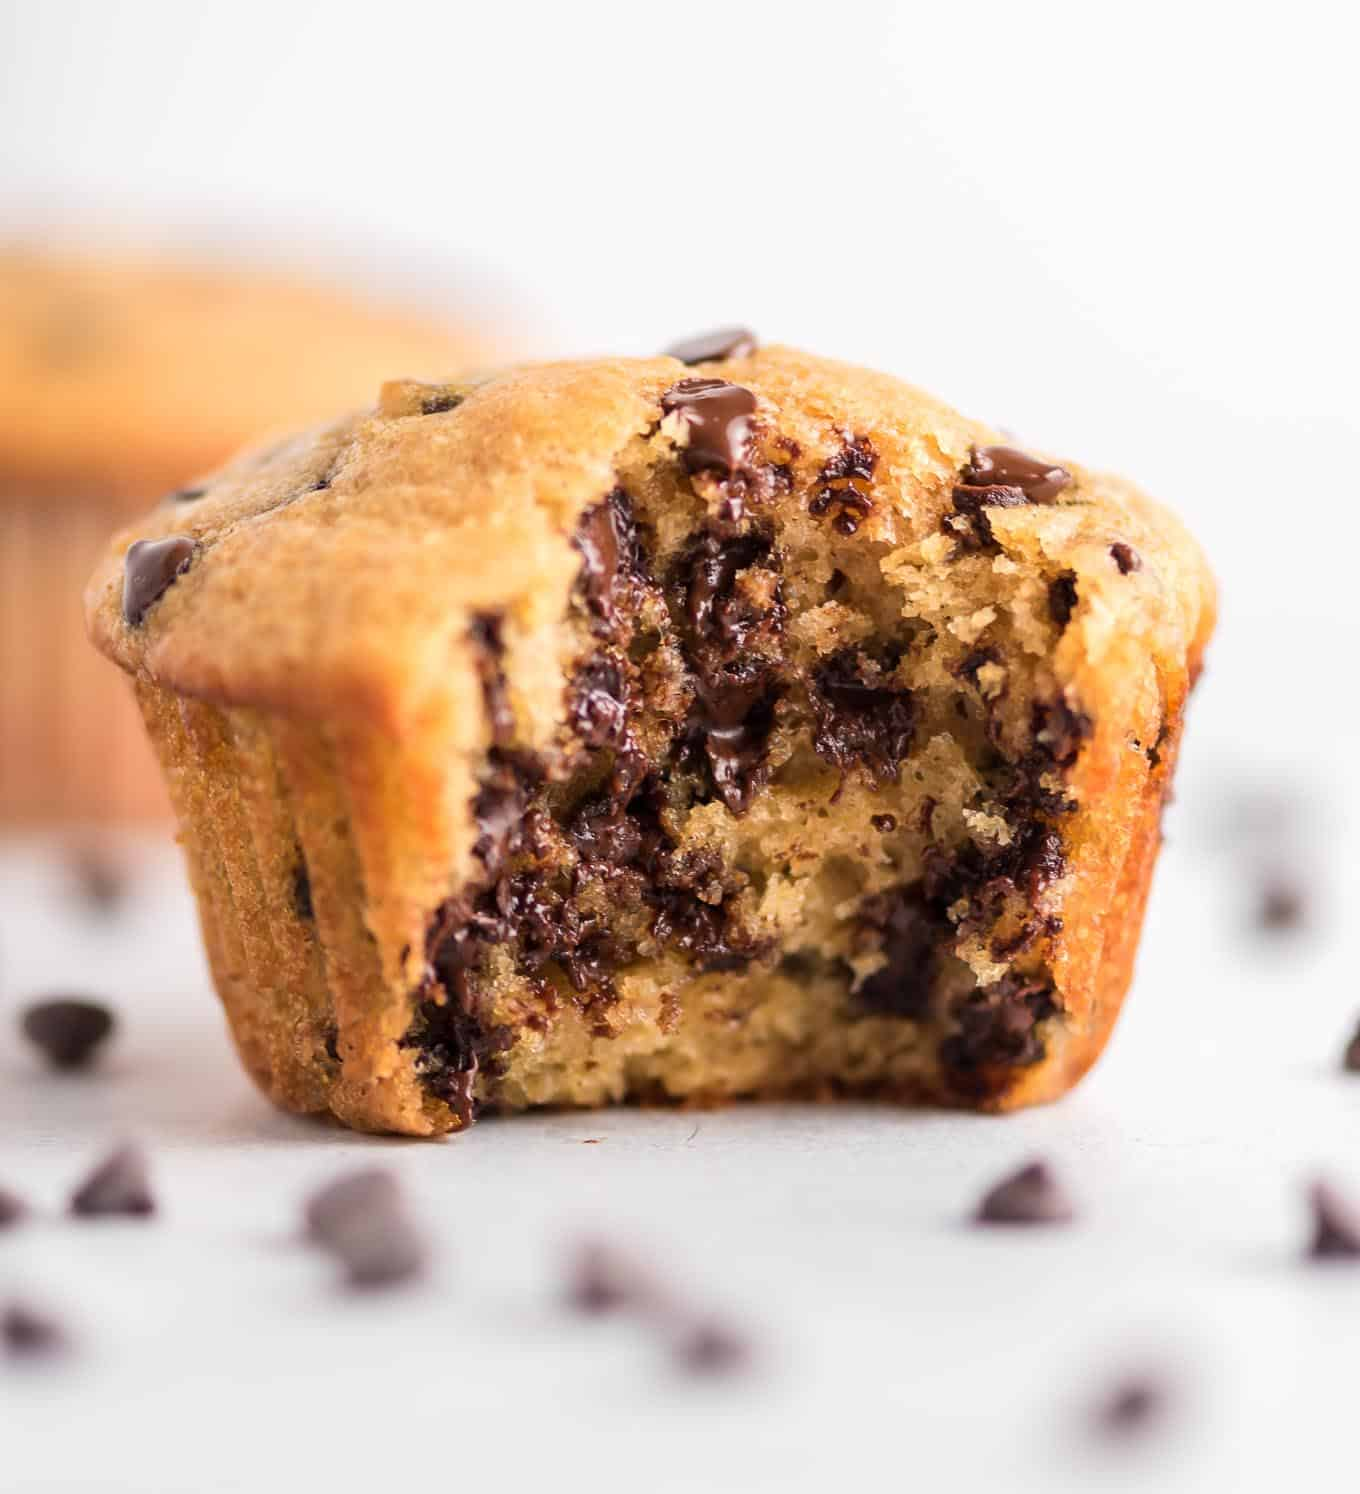 greek yogurt chocolate chip muffin with a bite taken out